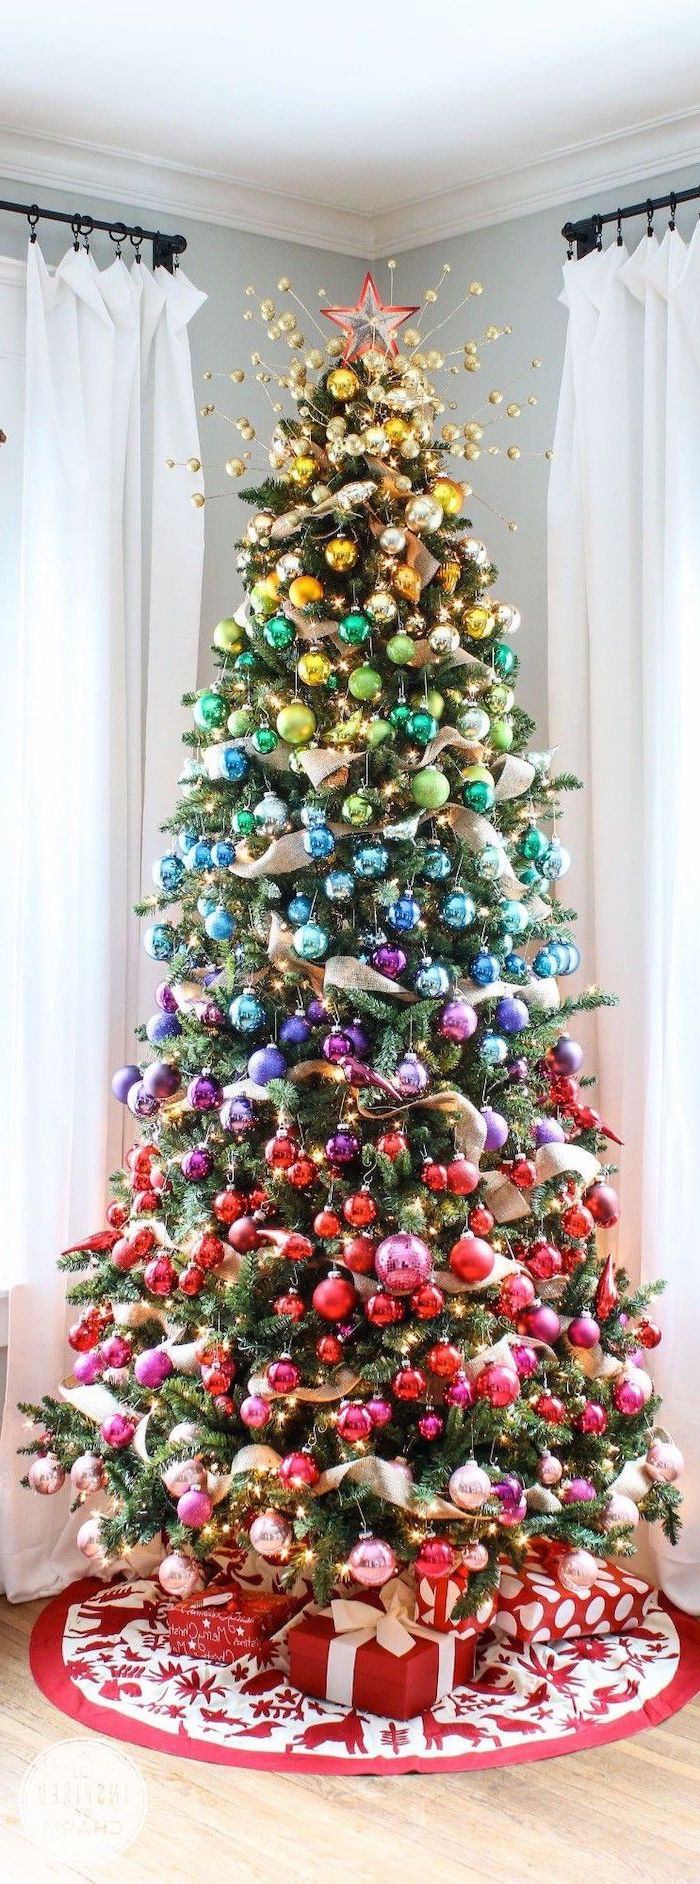 tall tree decorated in gradients colors of the rainbow, christmas tree ribbon, wrapped presents underneath